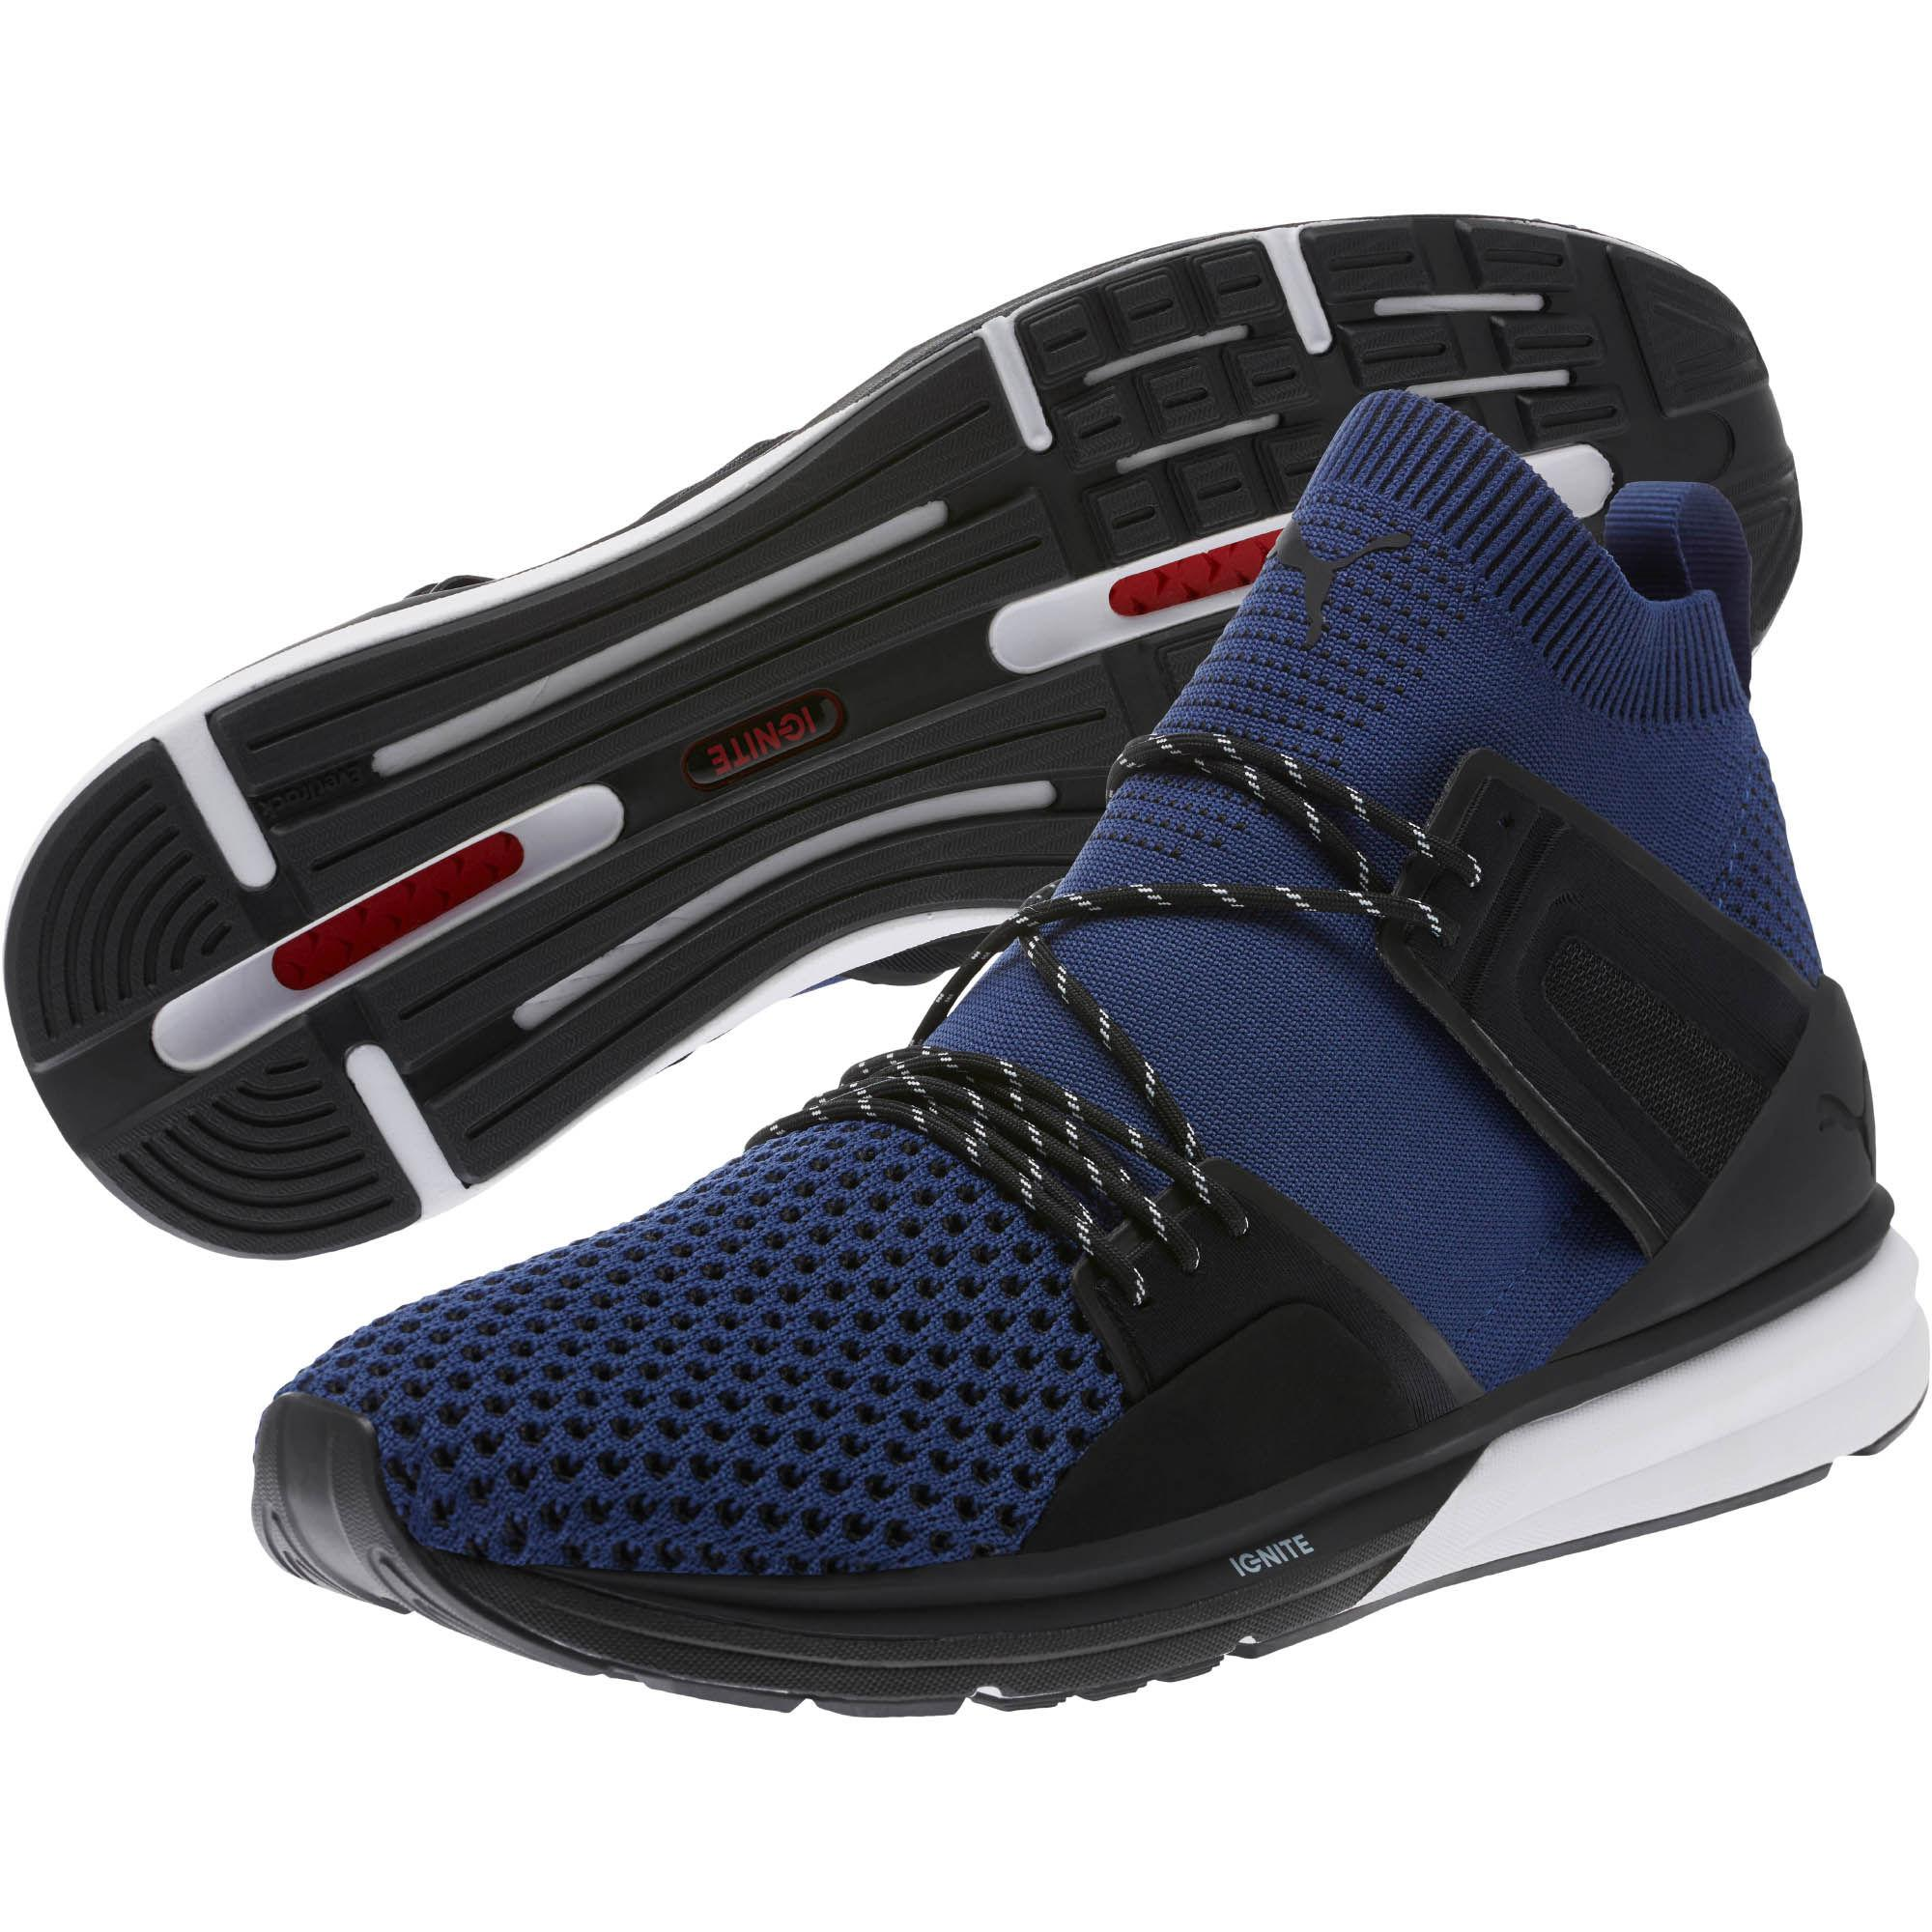 Lyst - PUMA B.o.g Limitless Hi Evoknit Men s Training Shoes in Blue ... da7e56f91